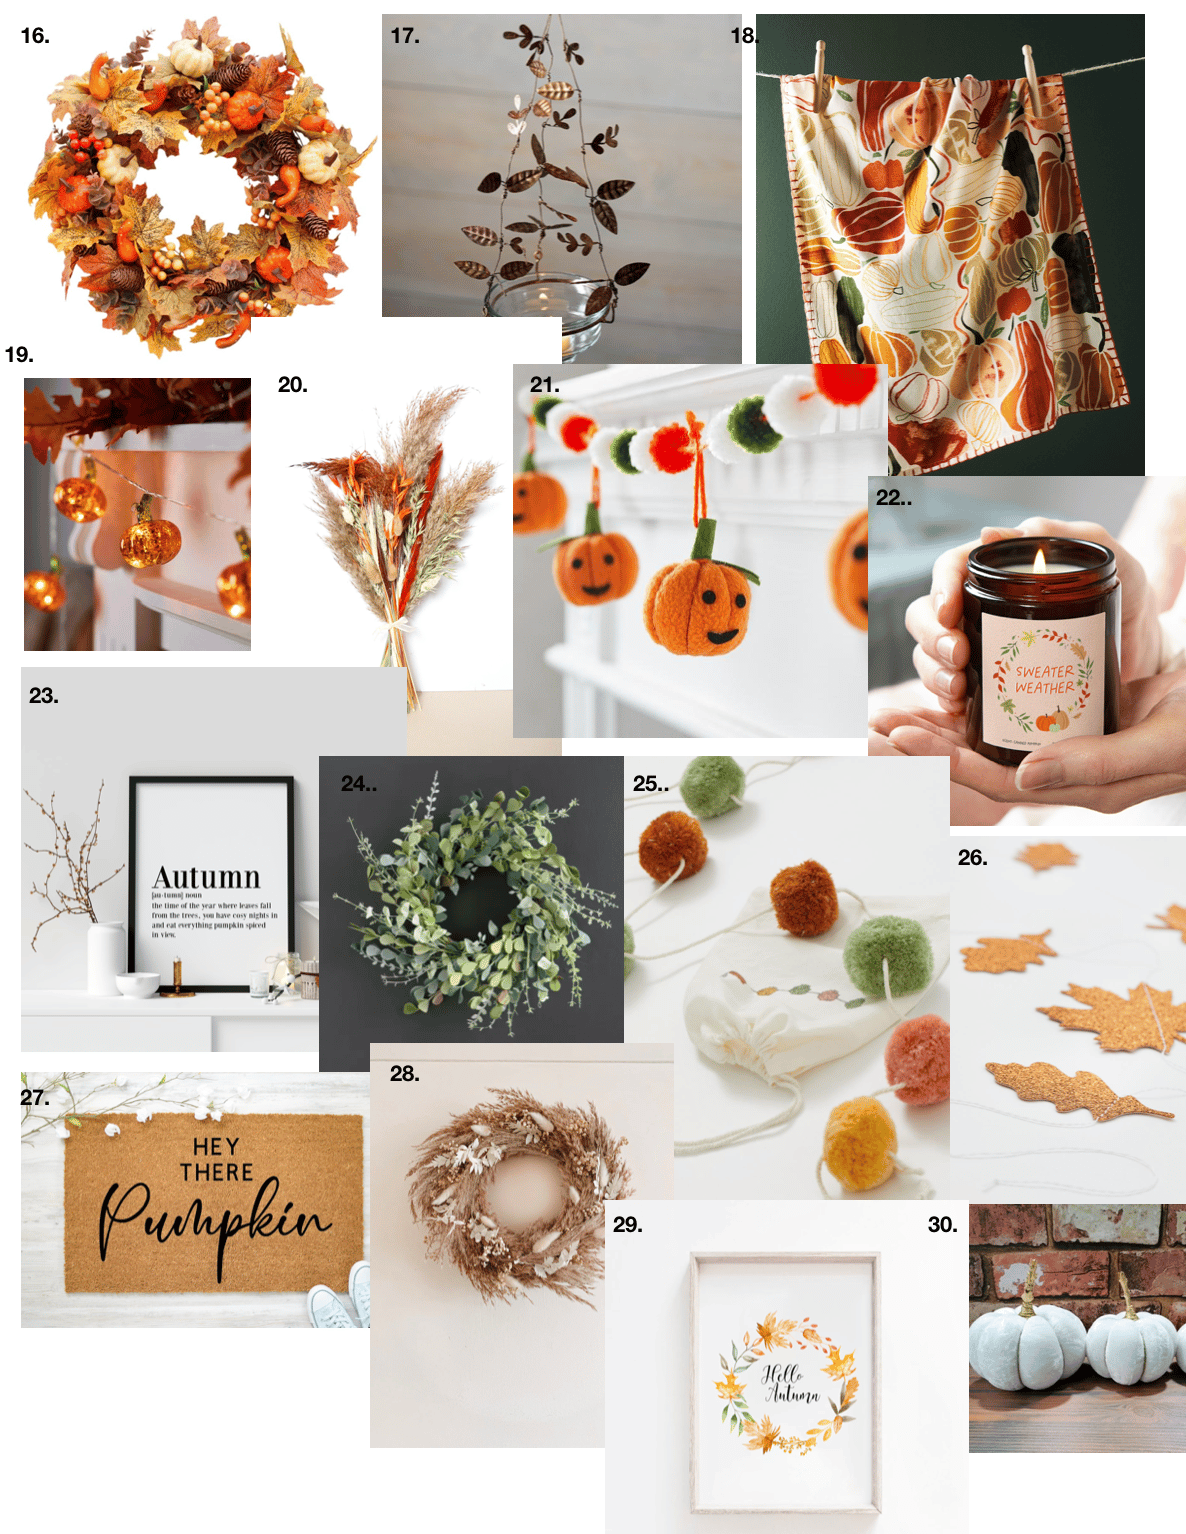 autumn decorations for the home